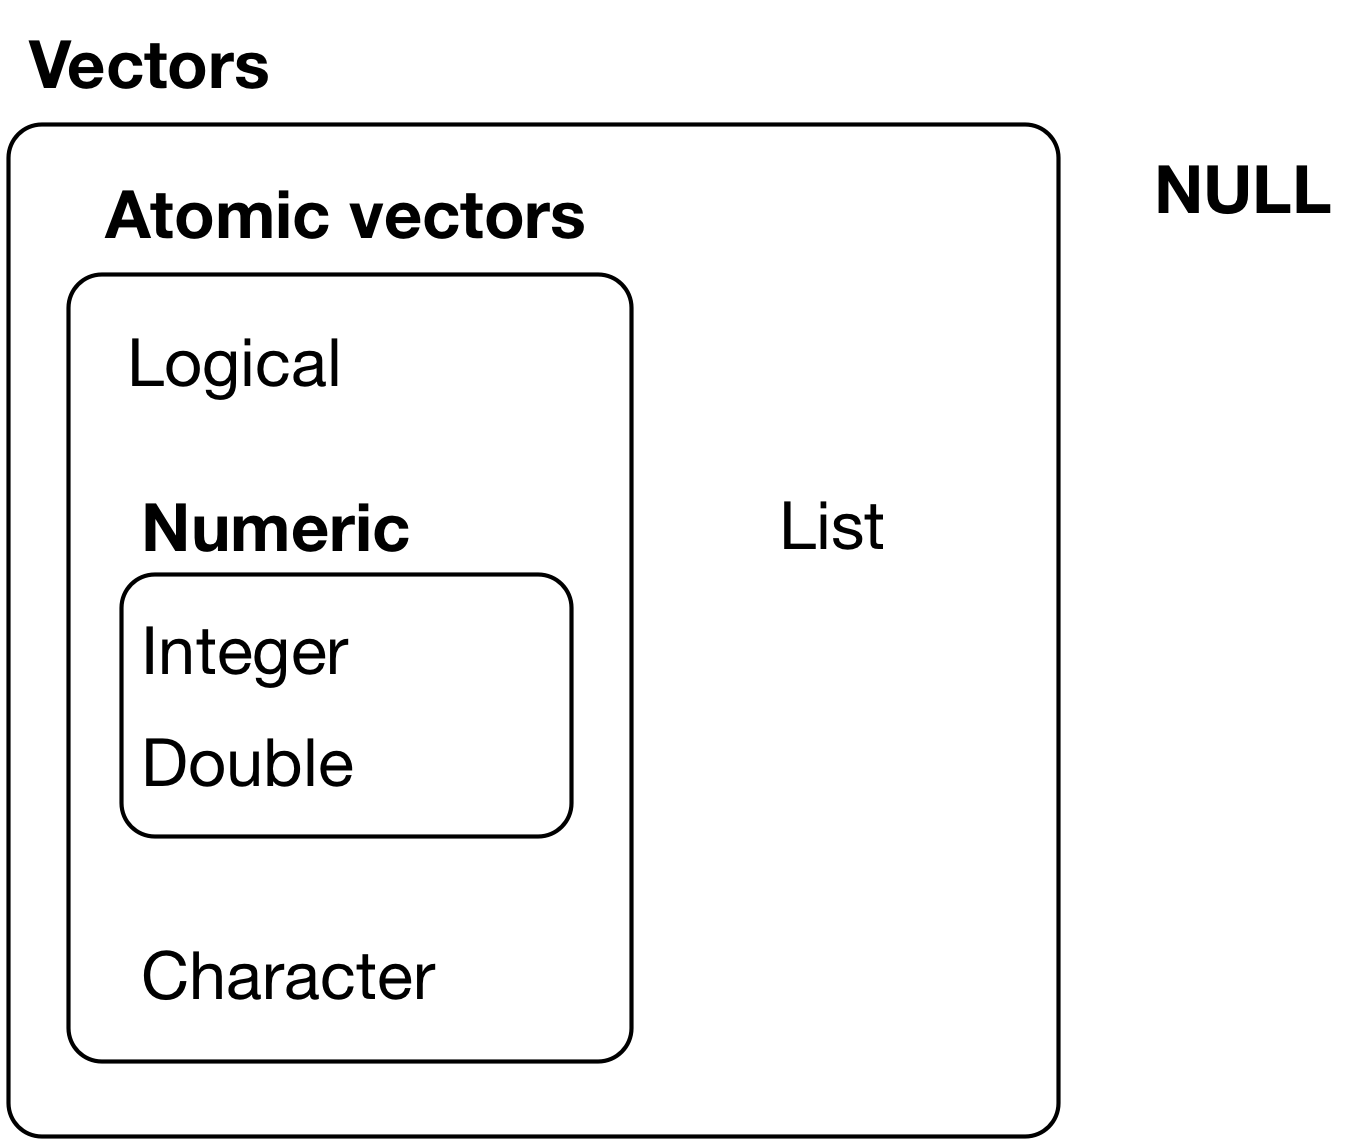 Figure 20.1 from [*R for Data Science*](http://r4ds.had.co.nz/vectors.html)